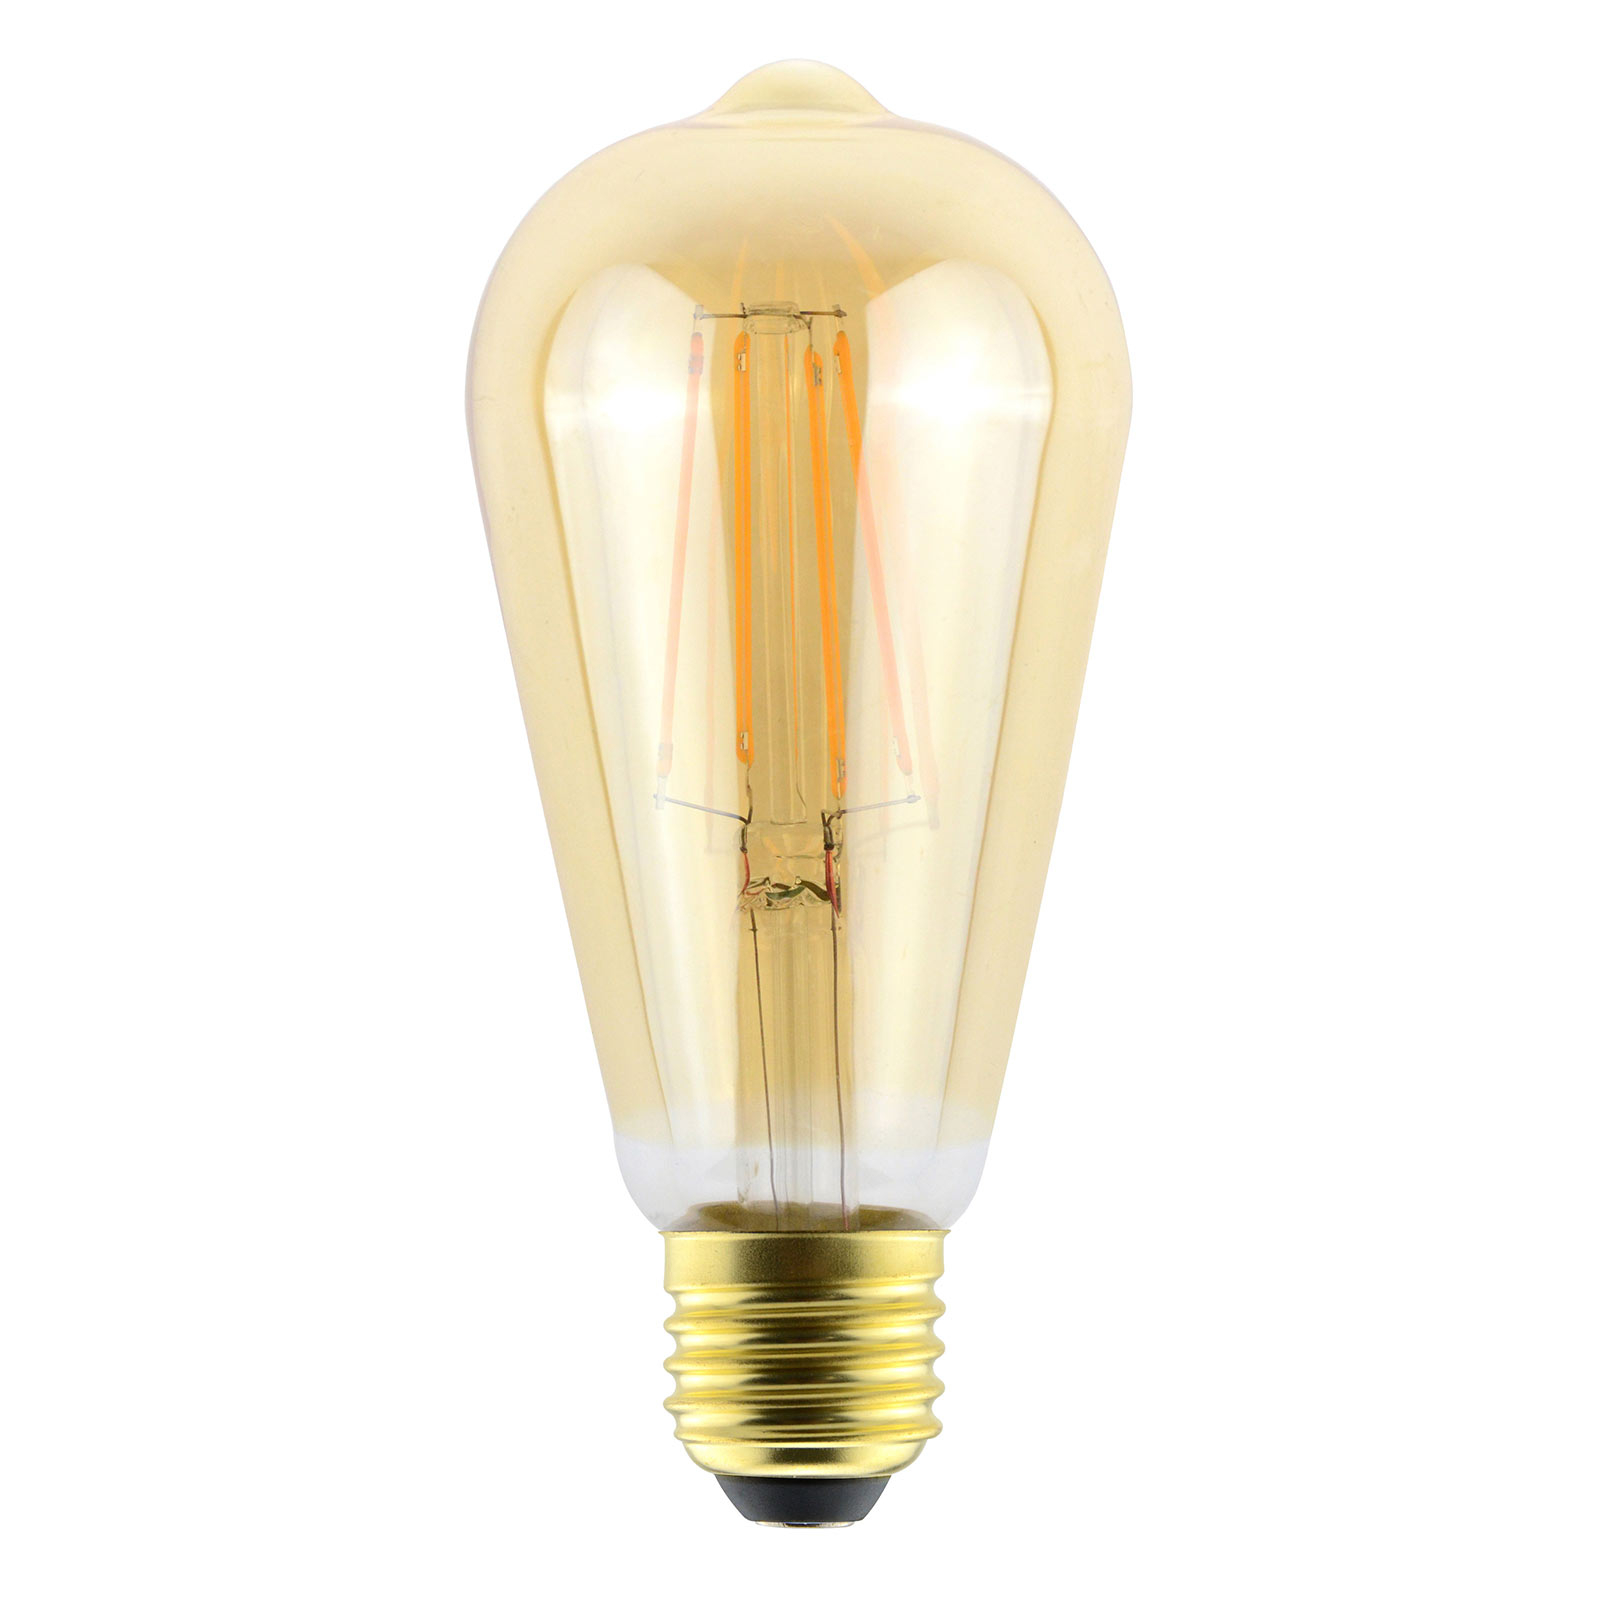 LED-Lampe E27 ToLEDo RT ST64 6W 825 gold dimmbar